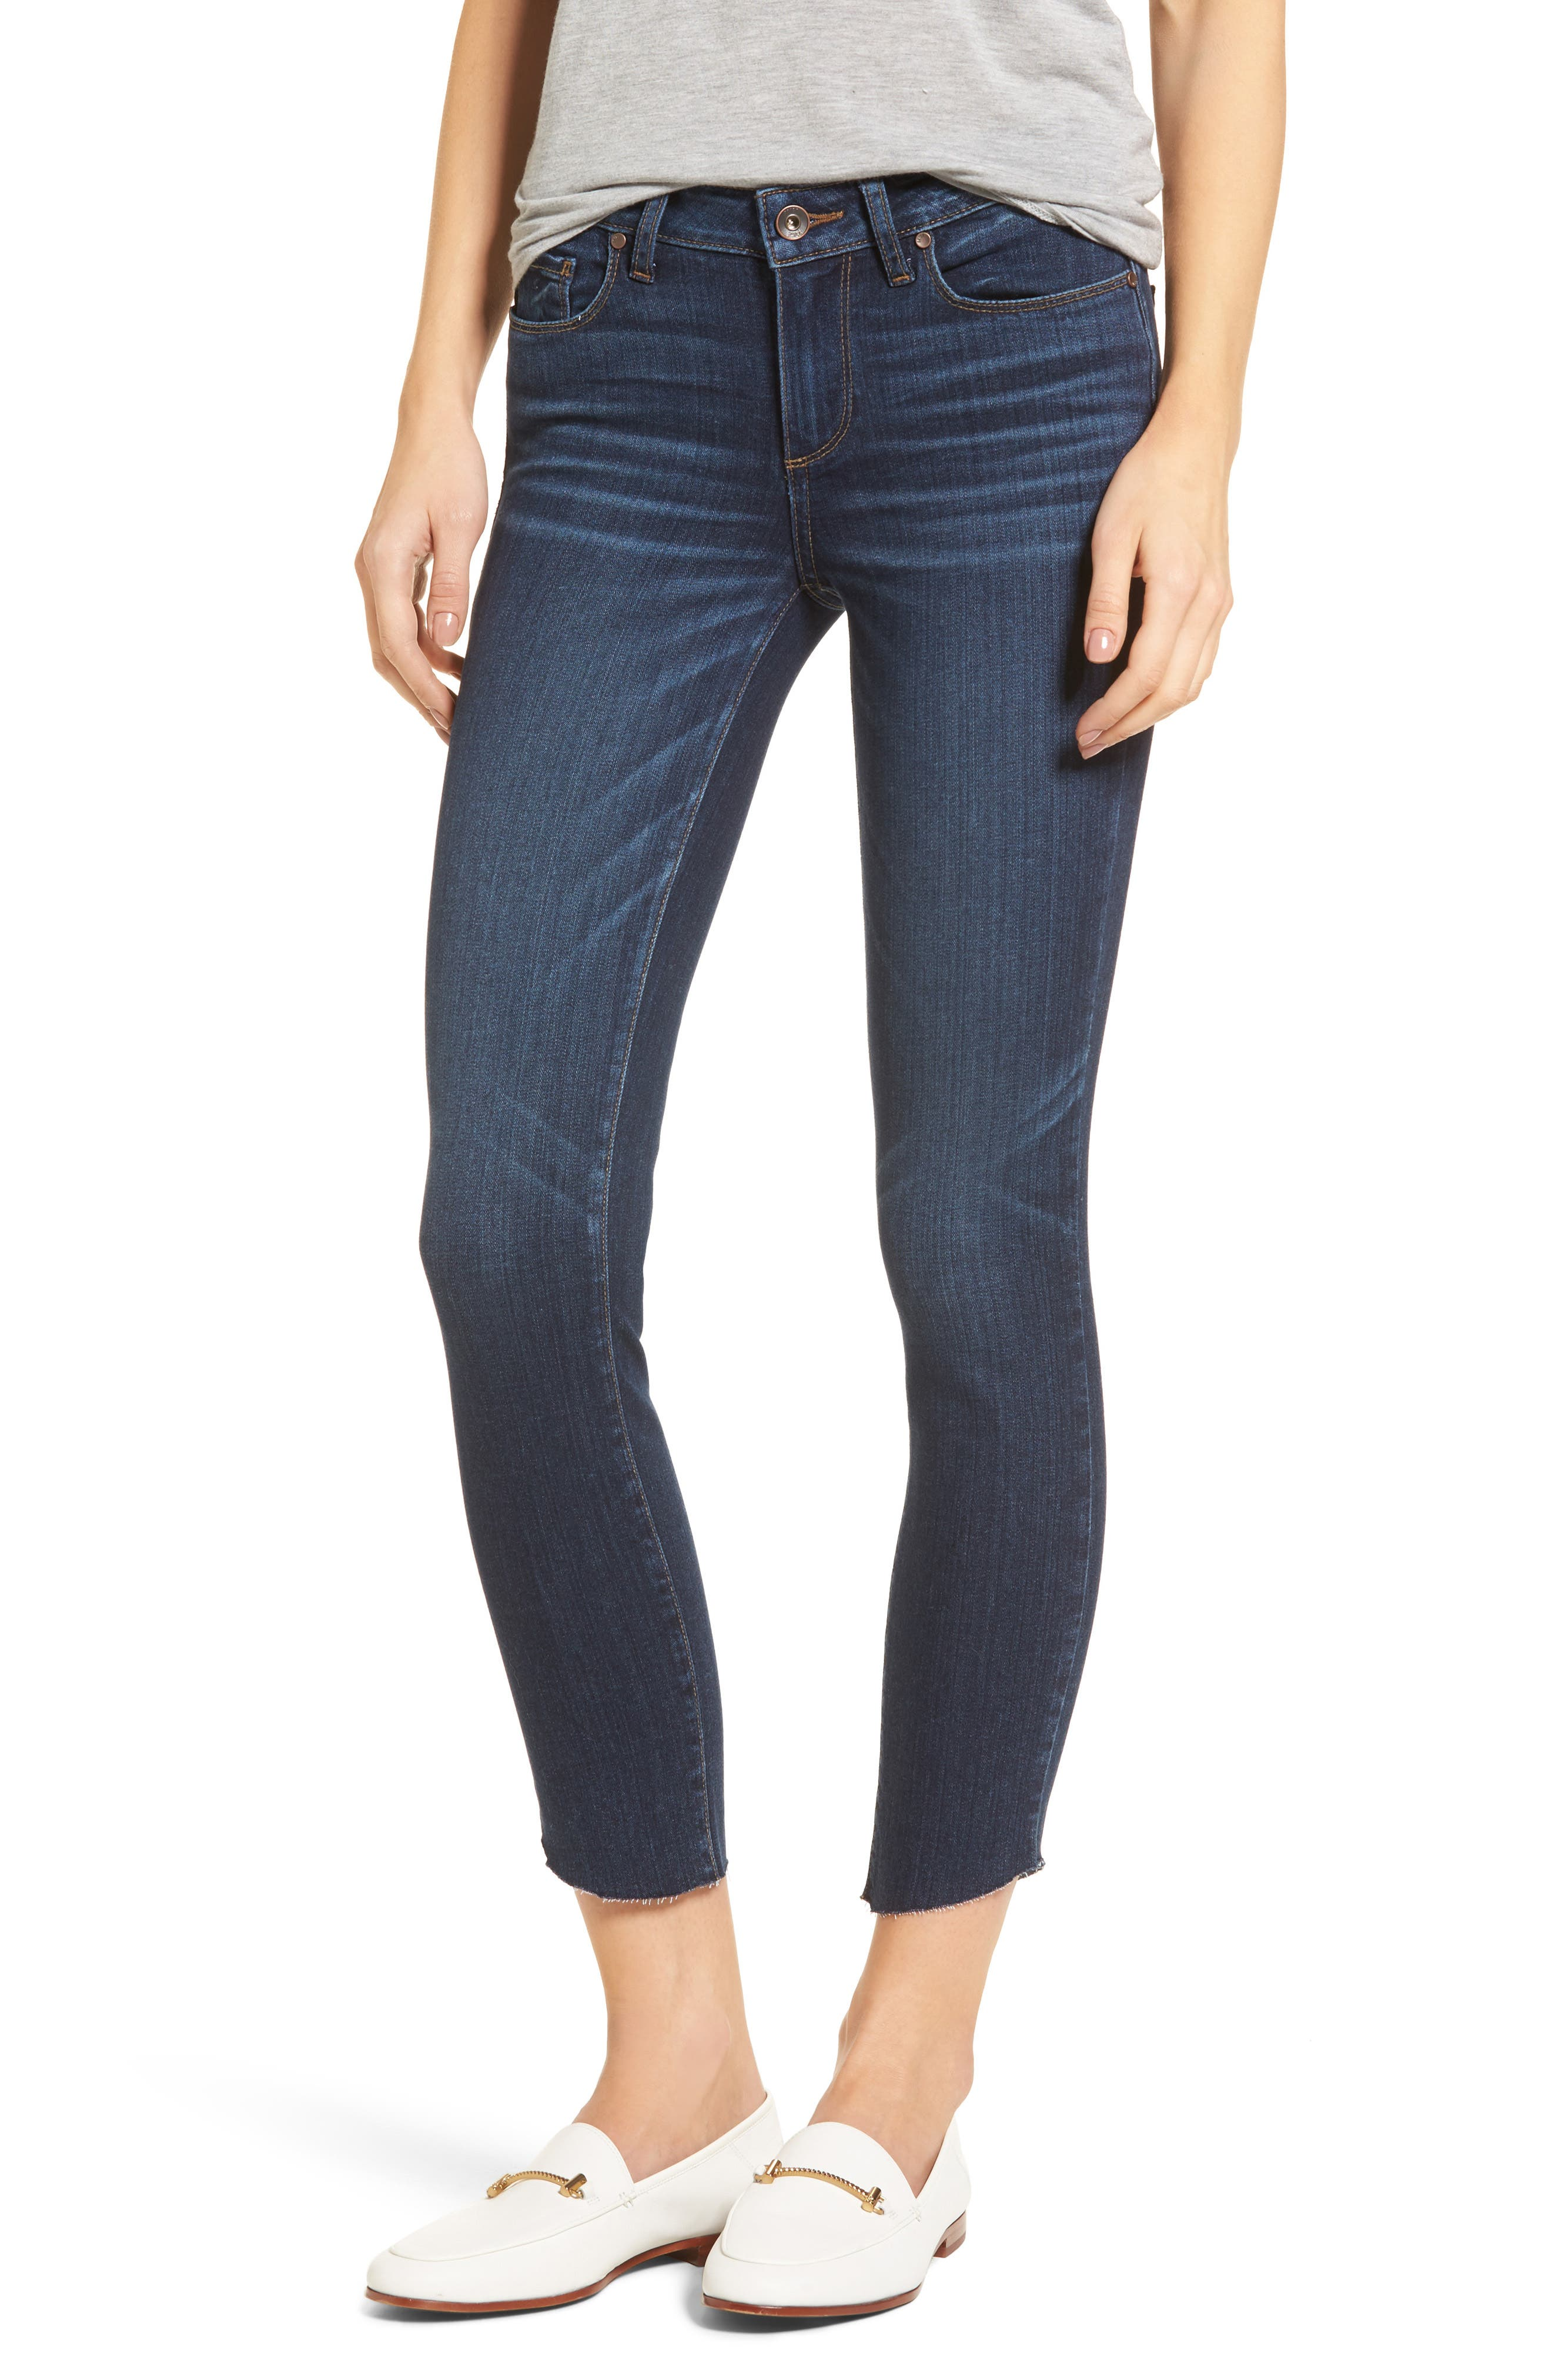 Main Image - PAIGE Transcend - Verdugo Ankle Ultra Skinny Jeans (Oaklyn)